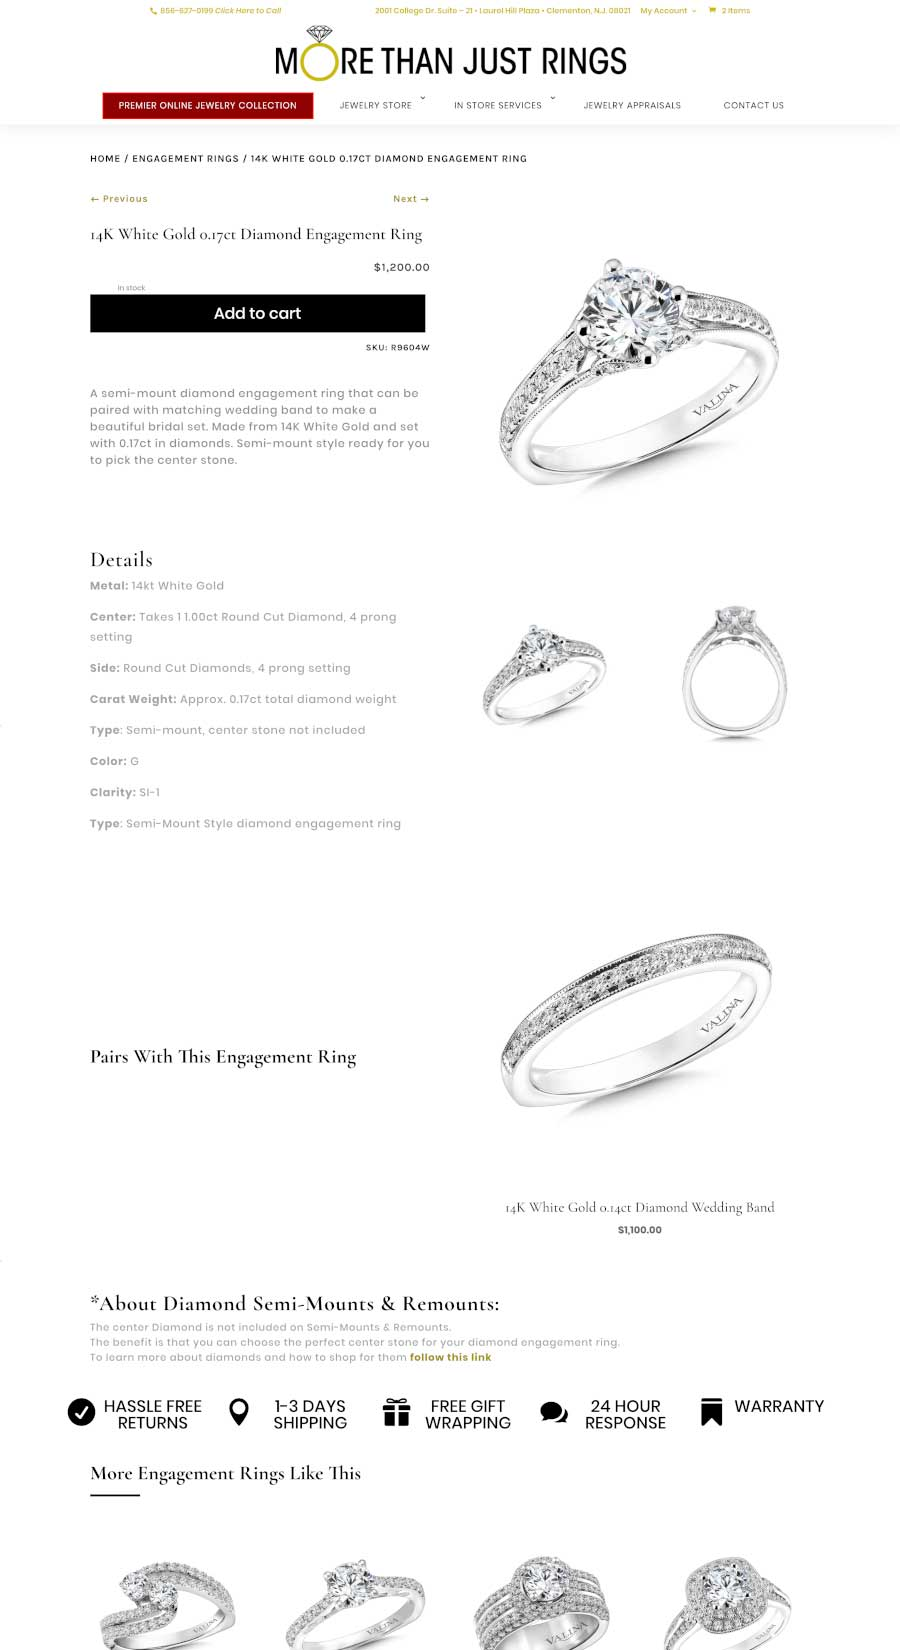 More Than Just Rings Product Detail